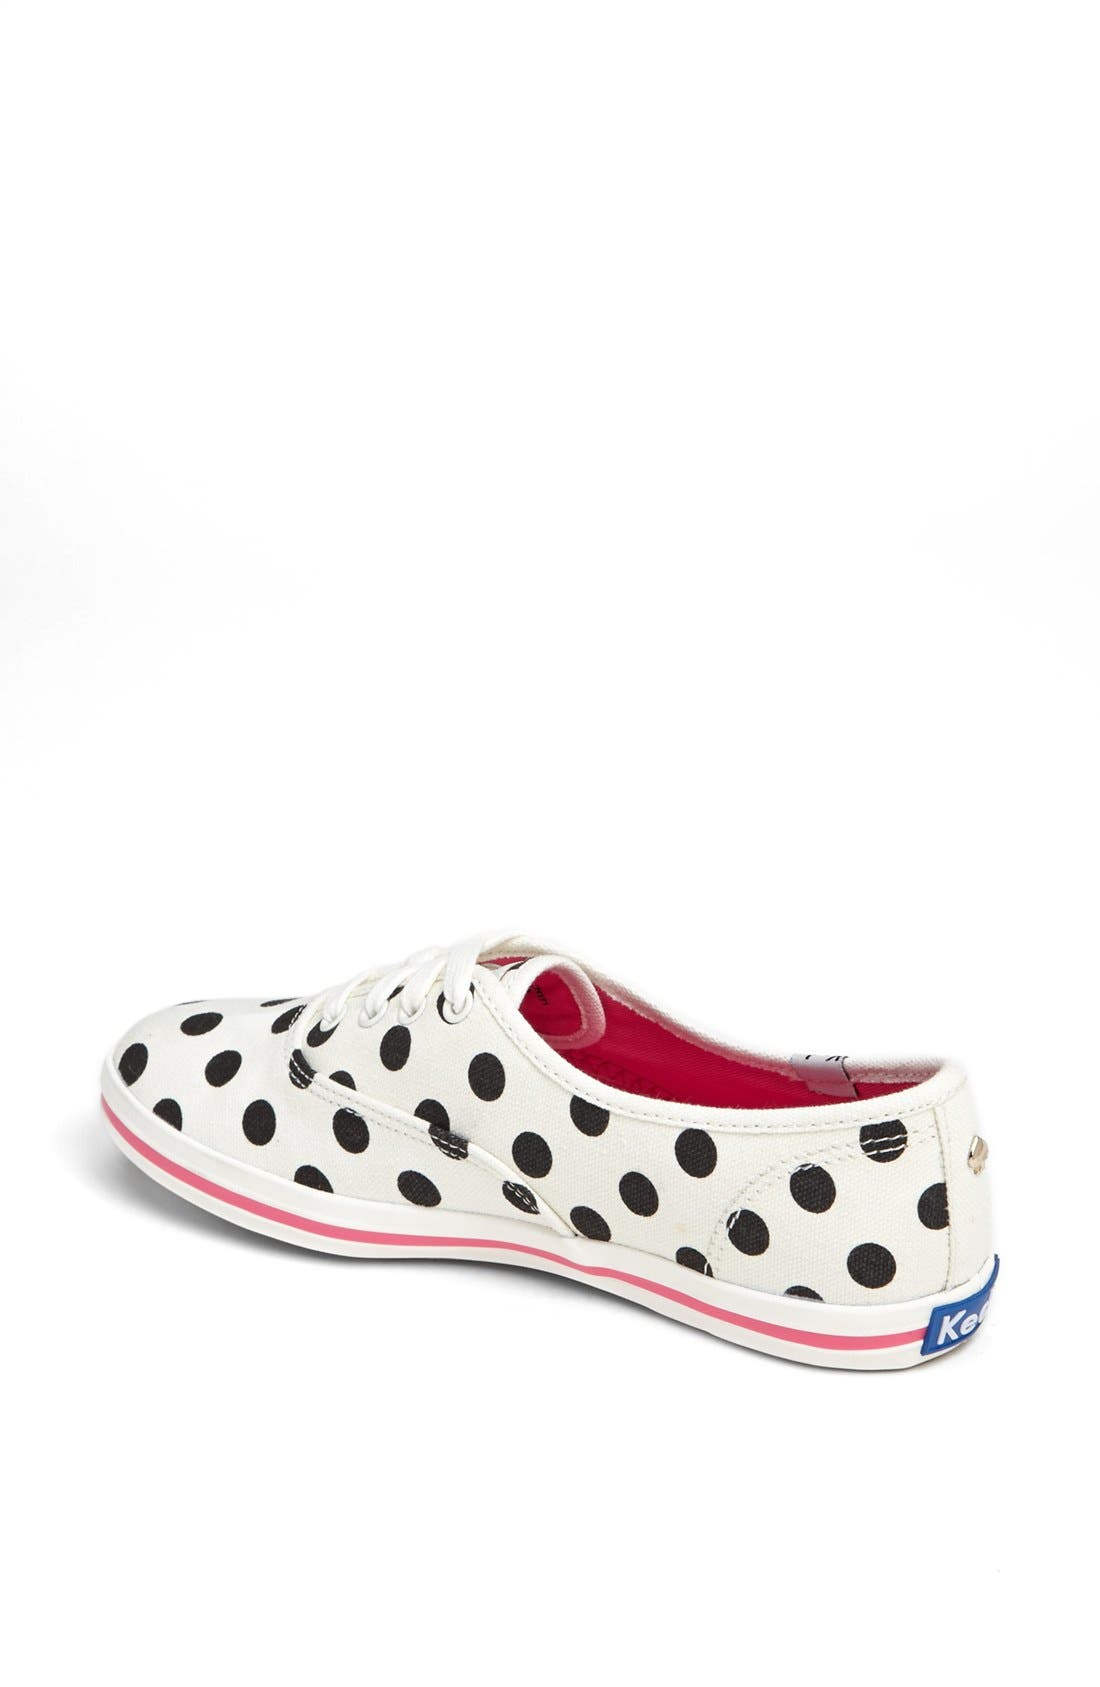 KEDS<SUP>®</SUP> FOR KATE SPADE NEW YORK,                             'kick' sneaker,                             Alternate thumbnail 2, color,                             900